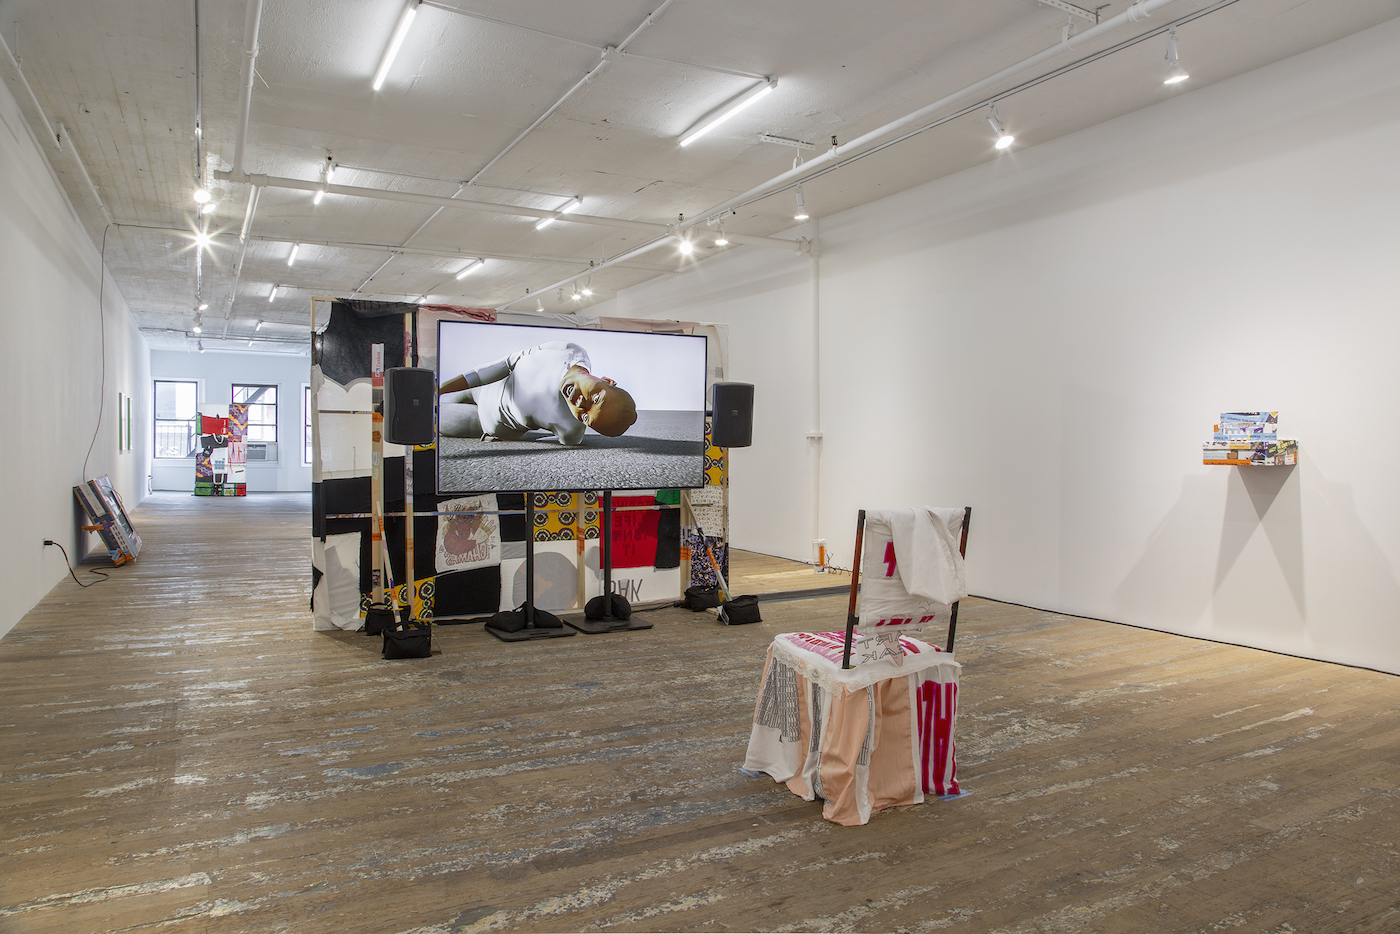 installation view of martine syms loot sweets, with makeshift tv theater made of textiles and objects in gallery space